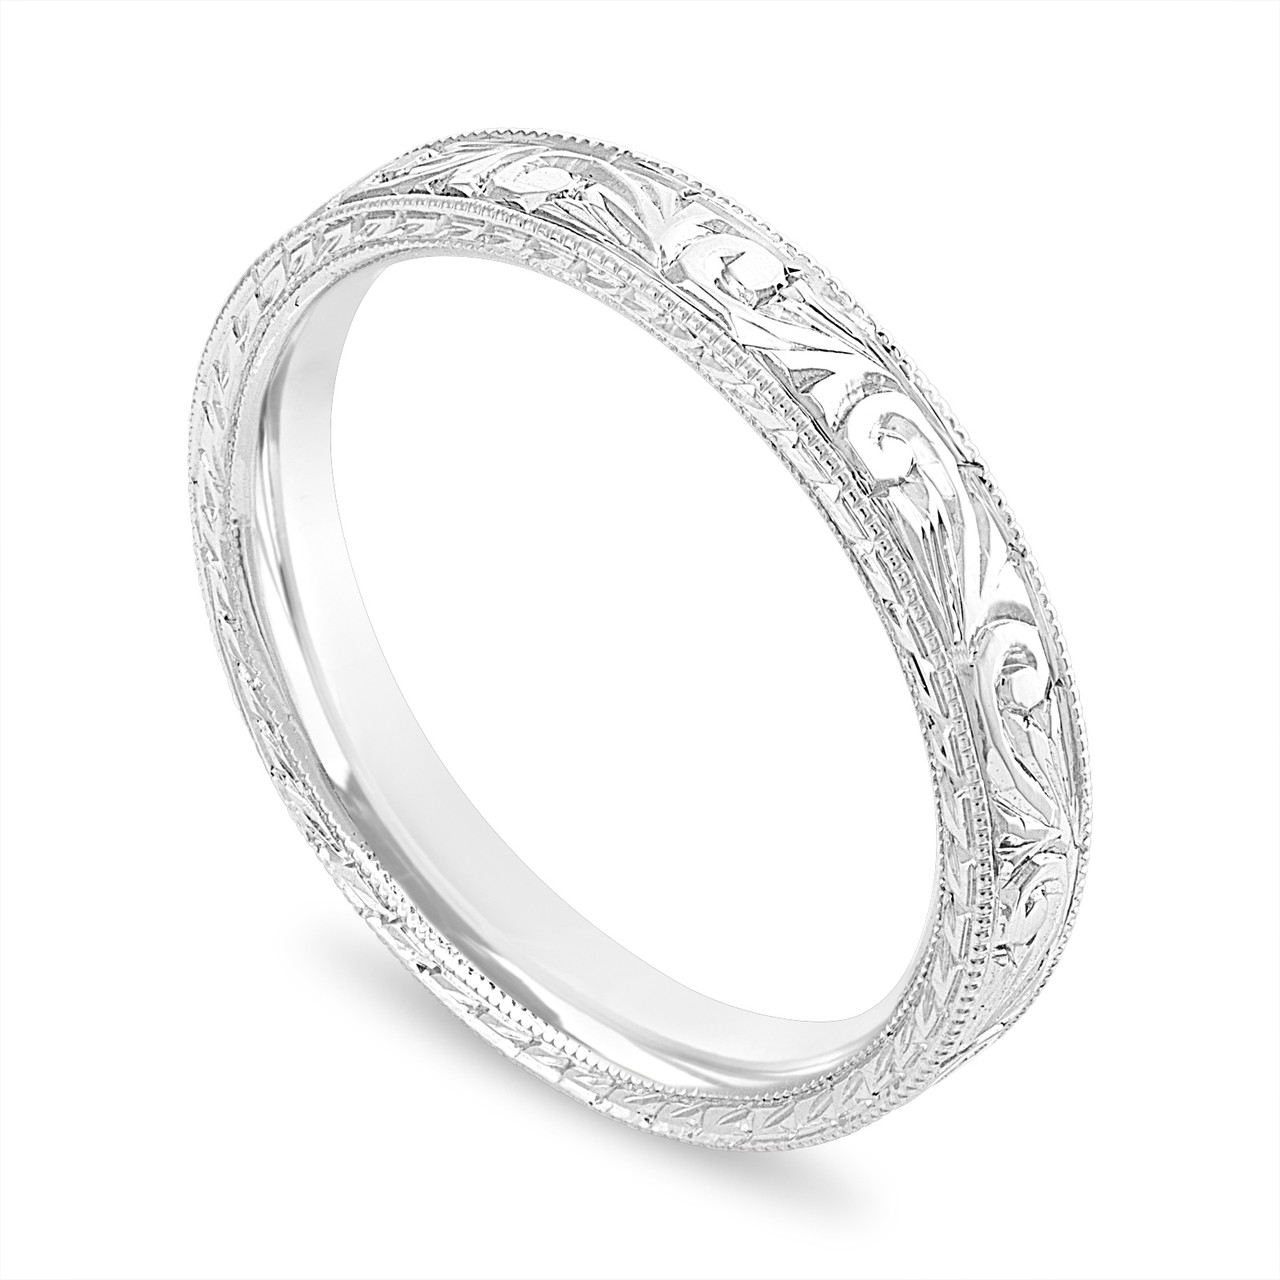 Filigree Wedding Band.Filigree Wedding Band Hand Engraved Wedding Ring 3 Mm Flat 14k White Gold Rose Or Yellow Gold Vintage Anniversary Band Unique Handmade